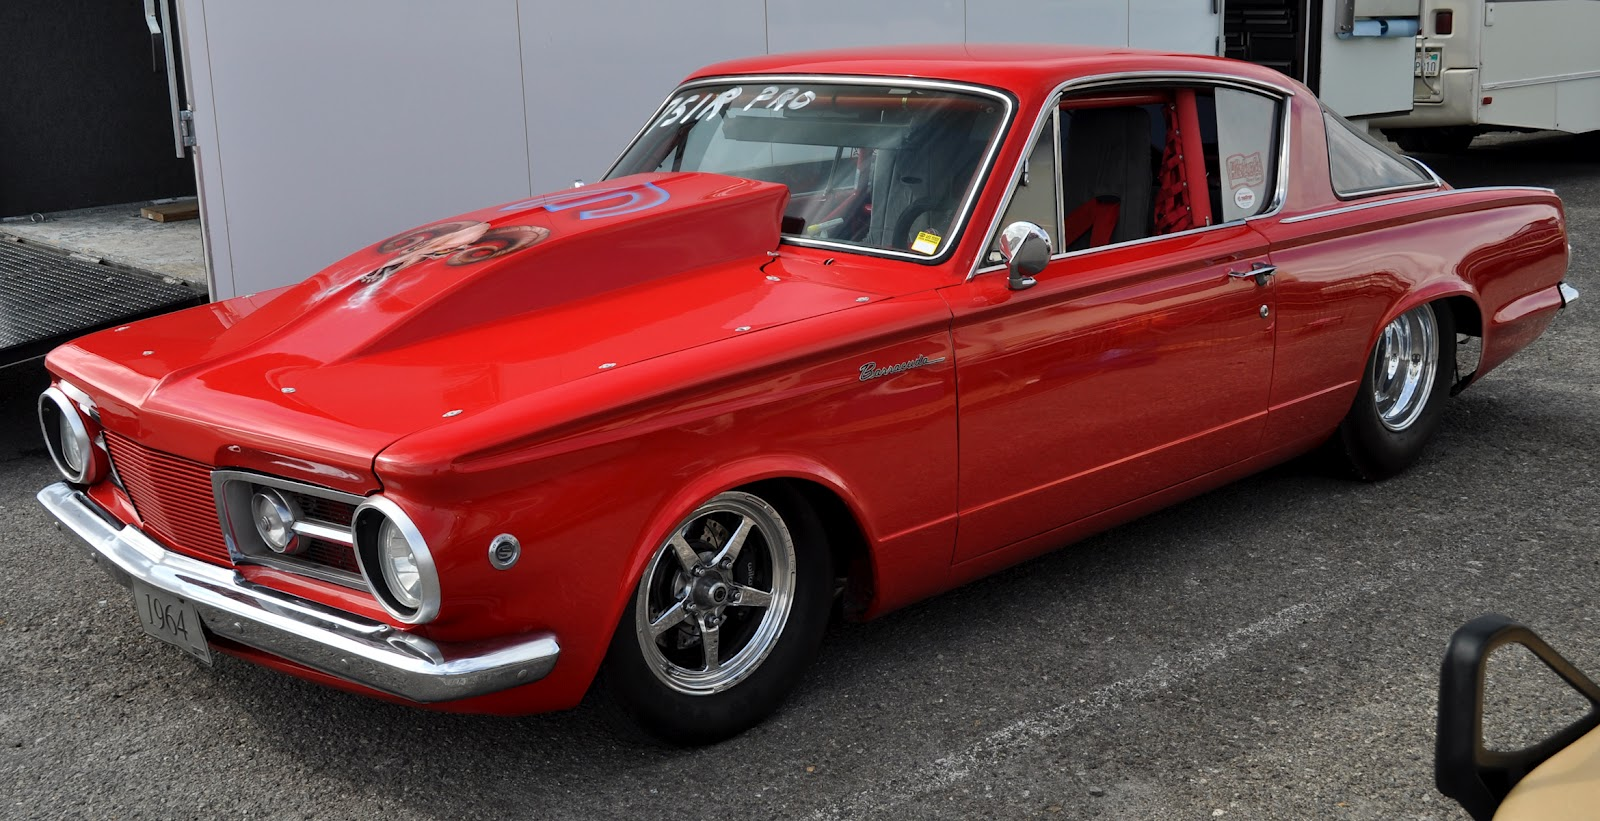 Just A Car Guy 1964 Barracuda Upgraded With A 340 For Serious Drag Racing Found At The Las